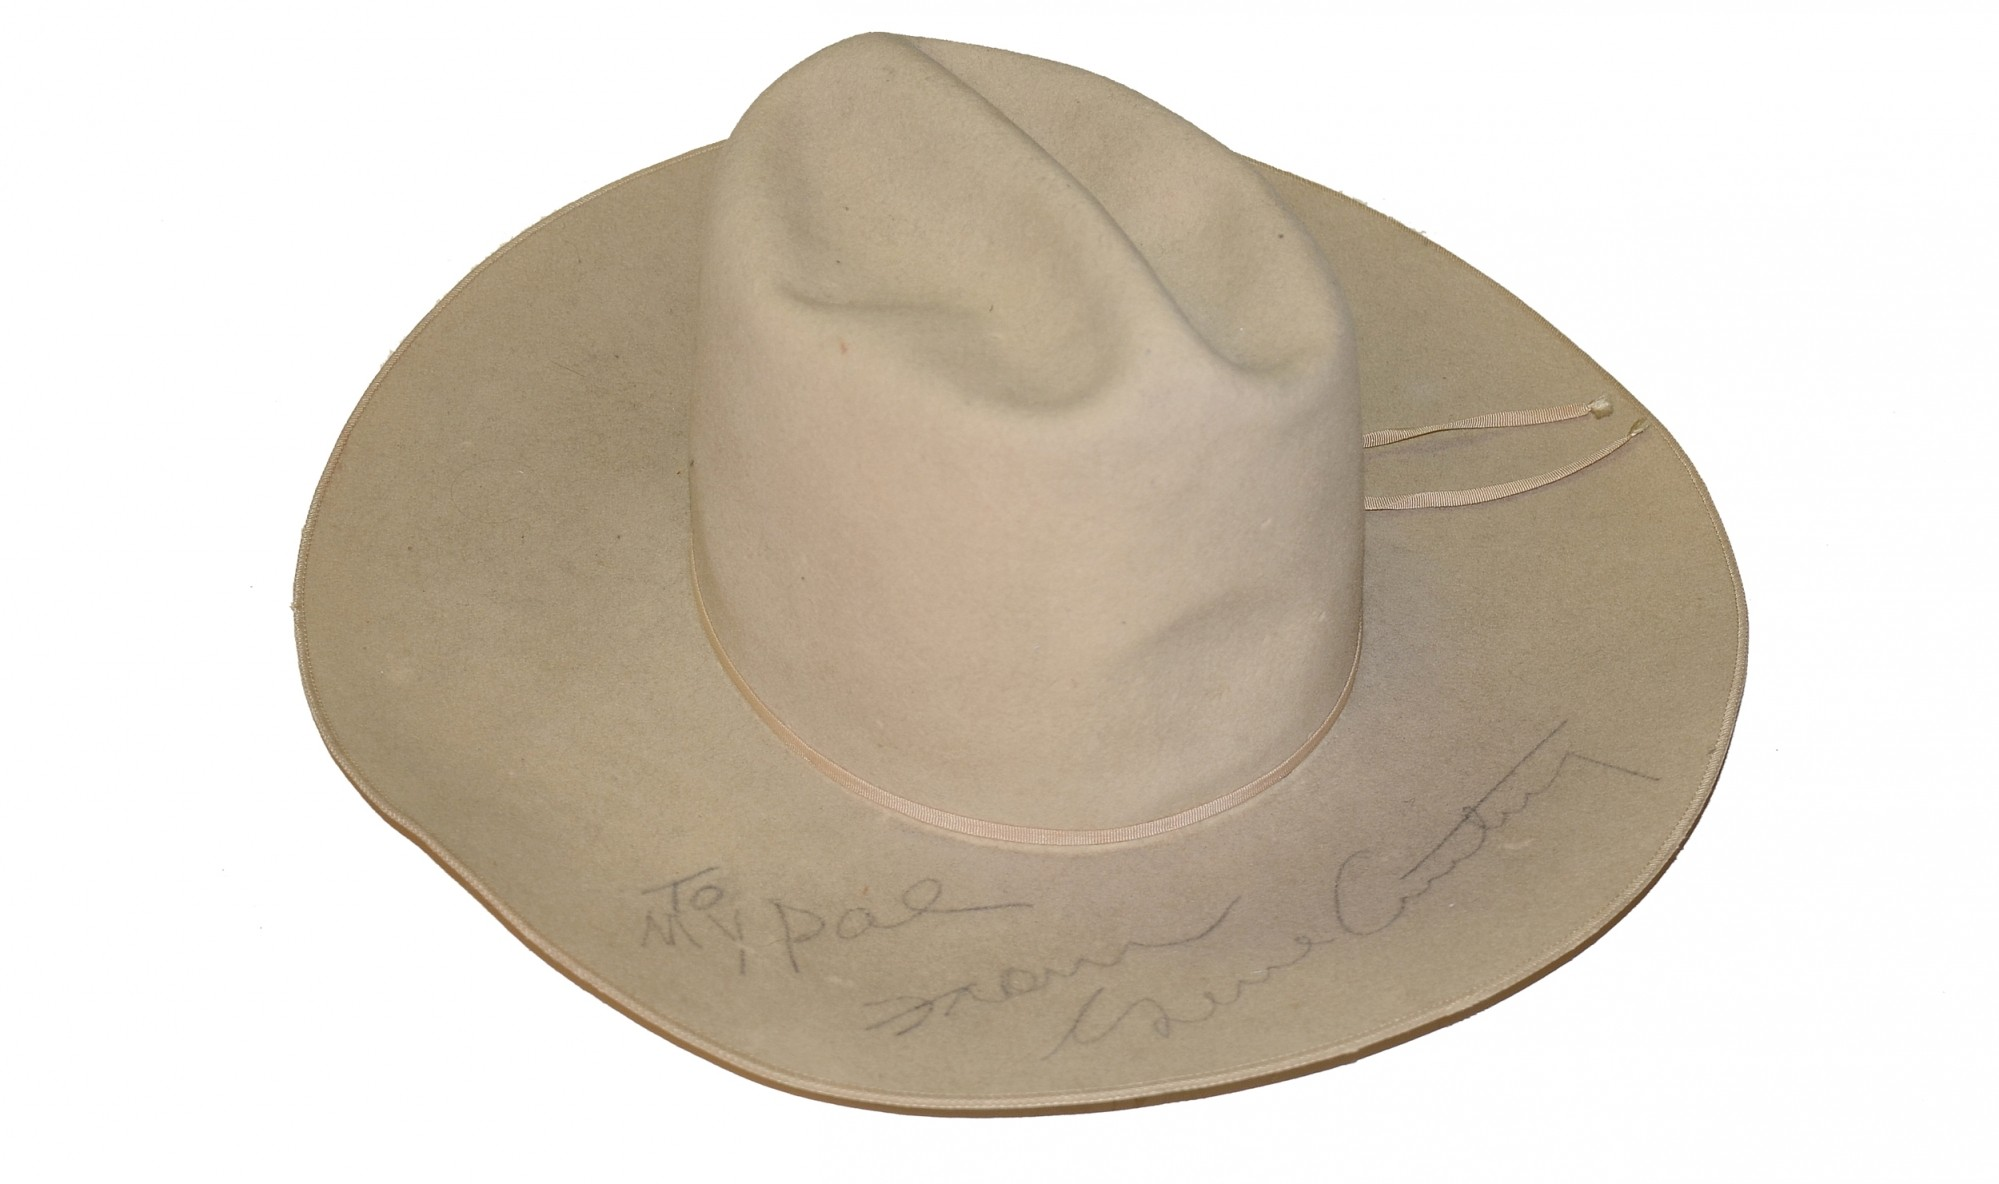 COWBOY HAT MADE FOR AND SIGNED BY GENE AUTRY, AS WELL AS HIS COWBOY SHIRT WITH PHOTO OF THE SHIRT BEING WORN